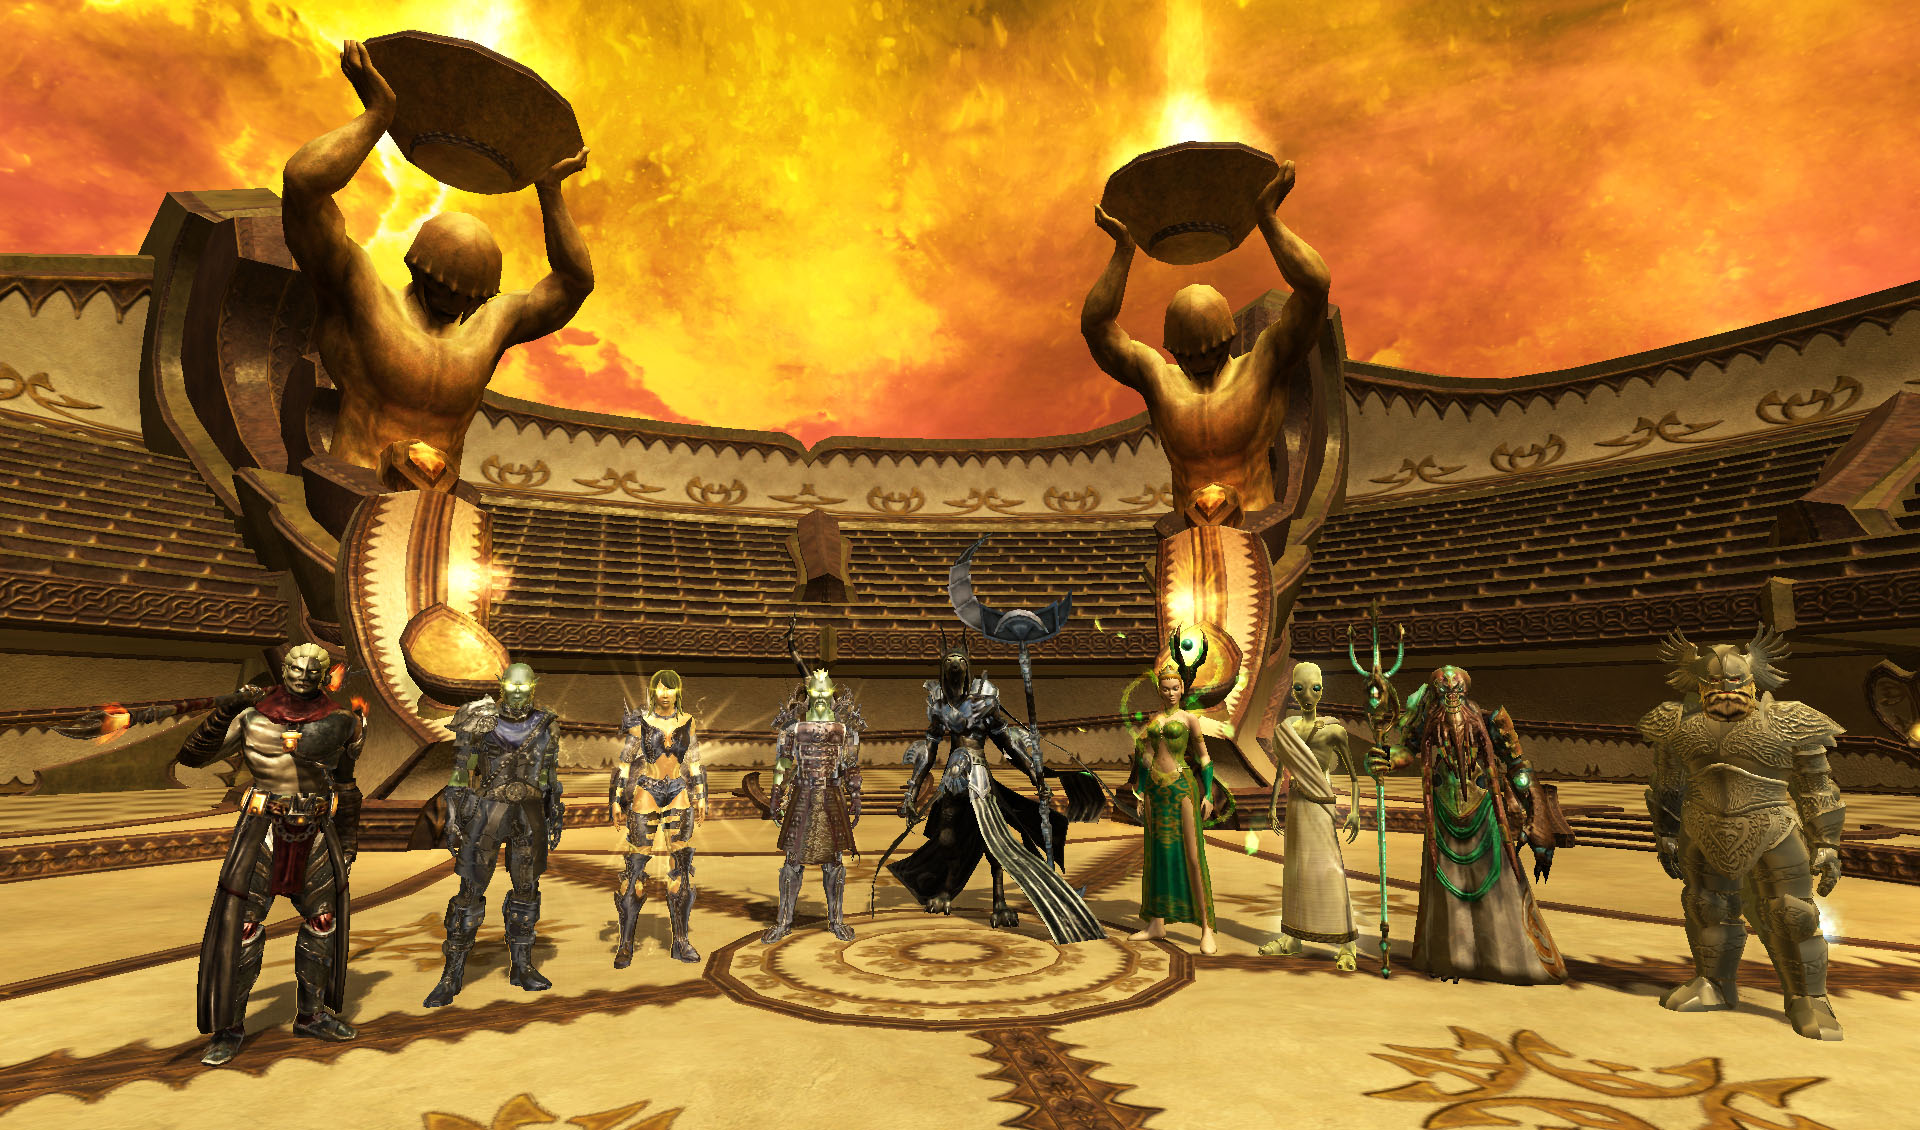 eq2_babagra_pl - Arena of the Gods